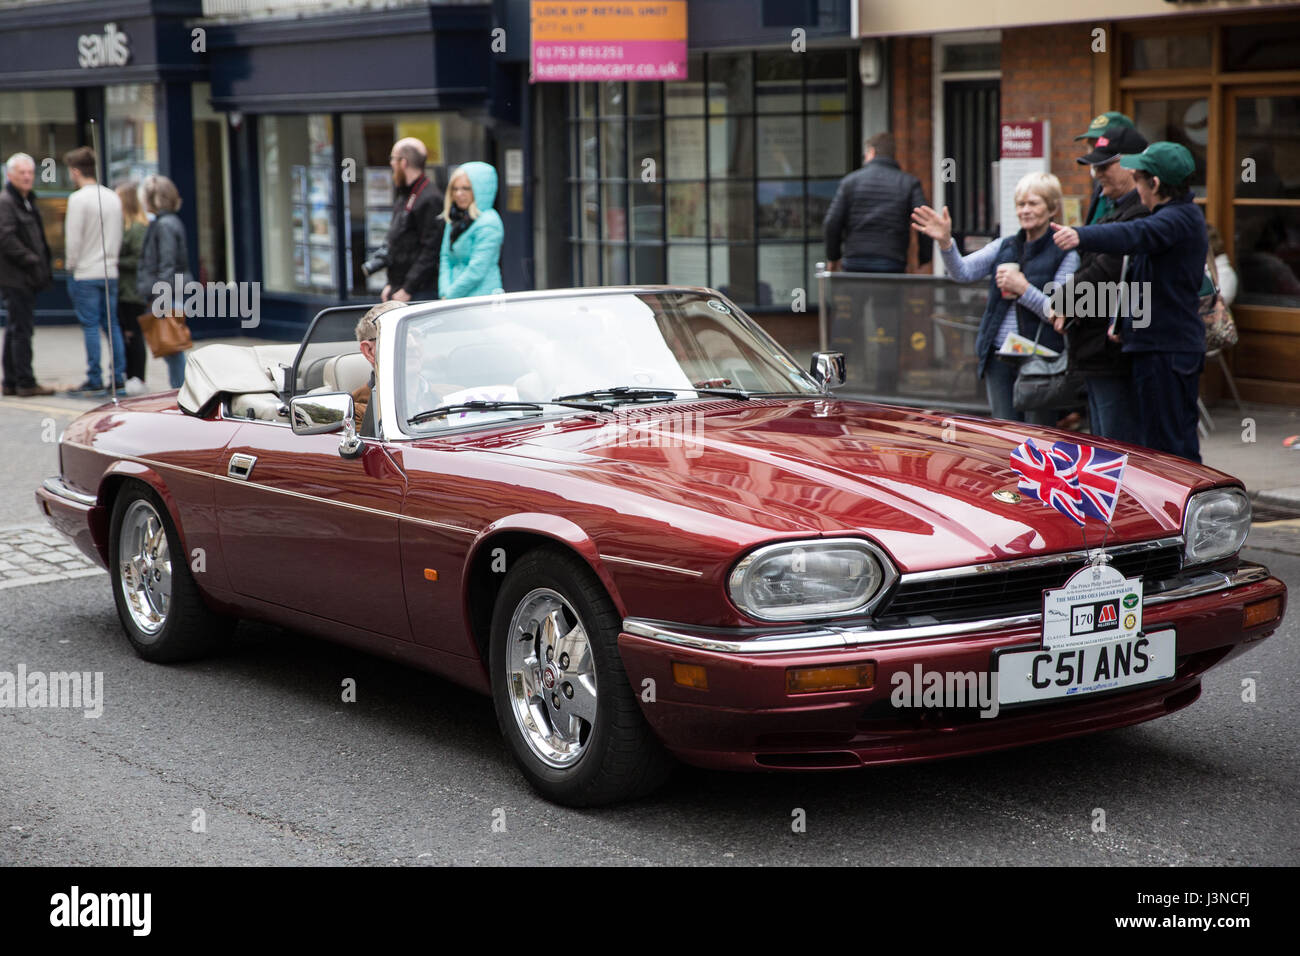 Windsor Uk 6th May 2017 A Procession Of 250 Vintage Jaguar Cars